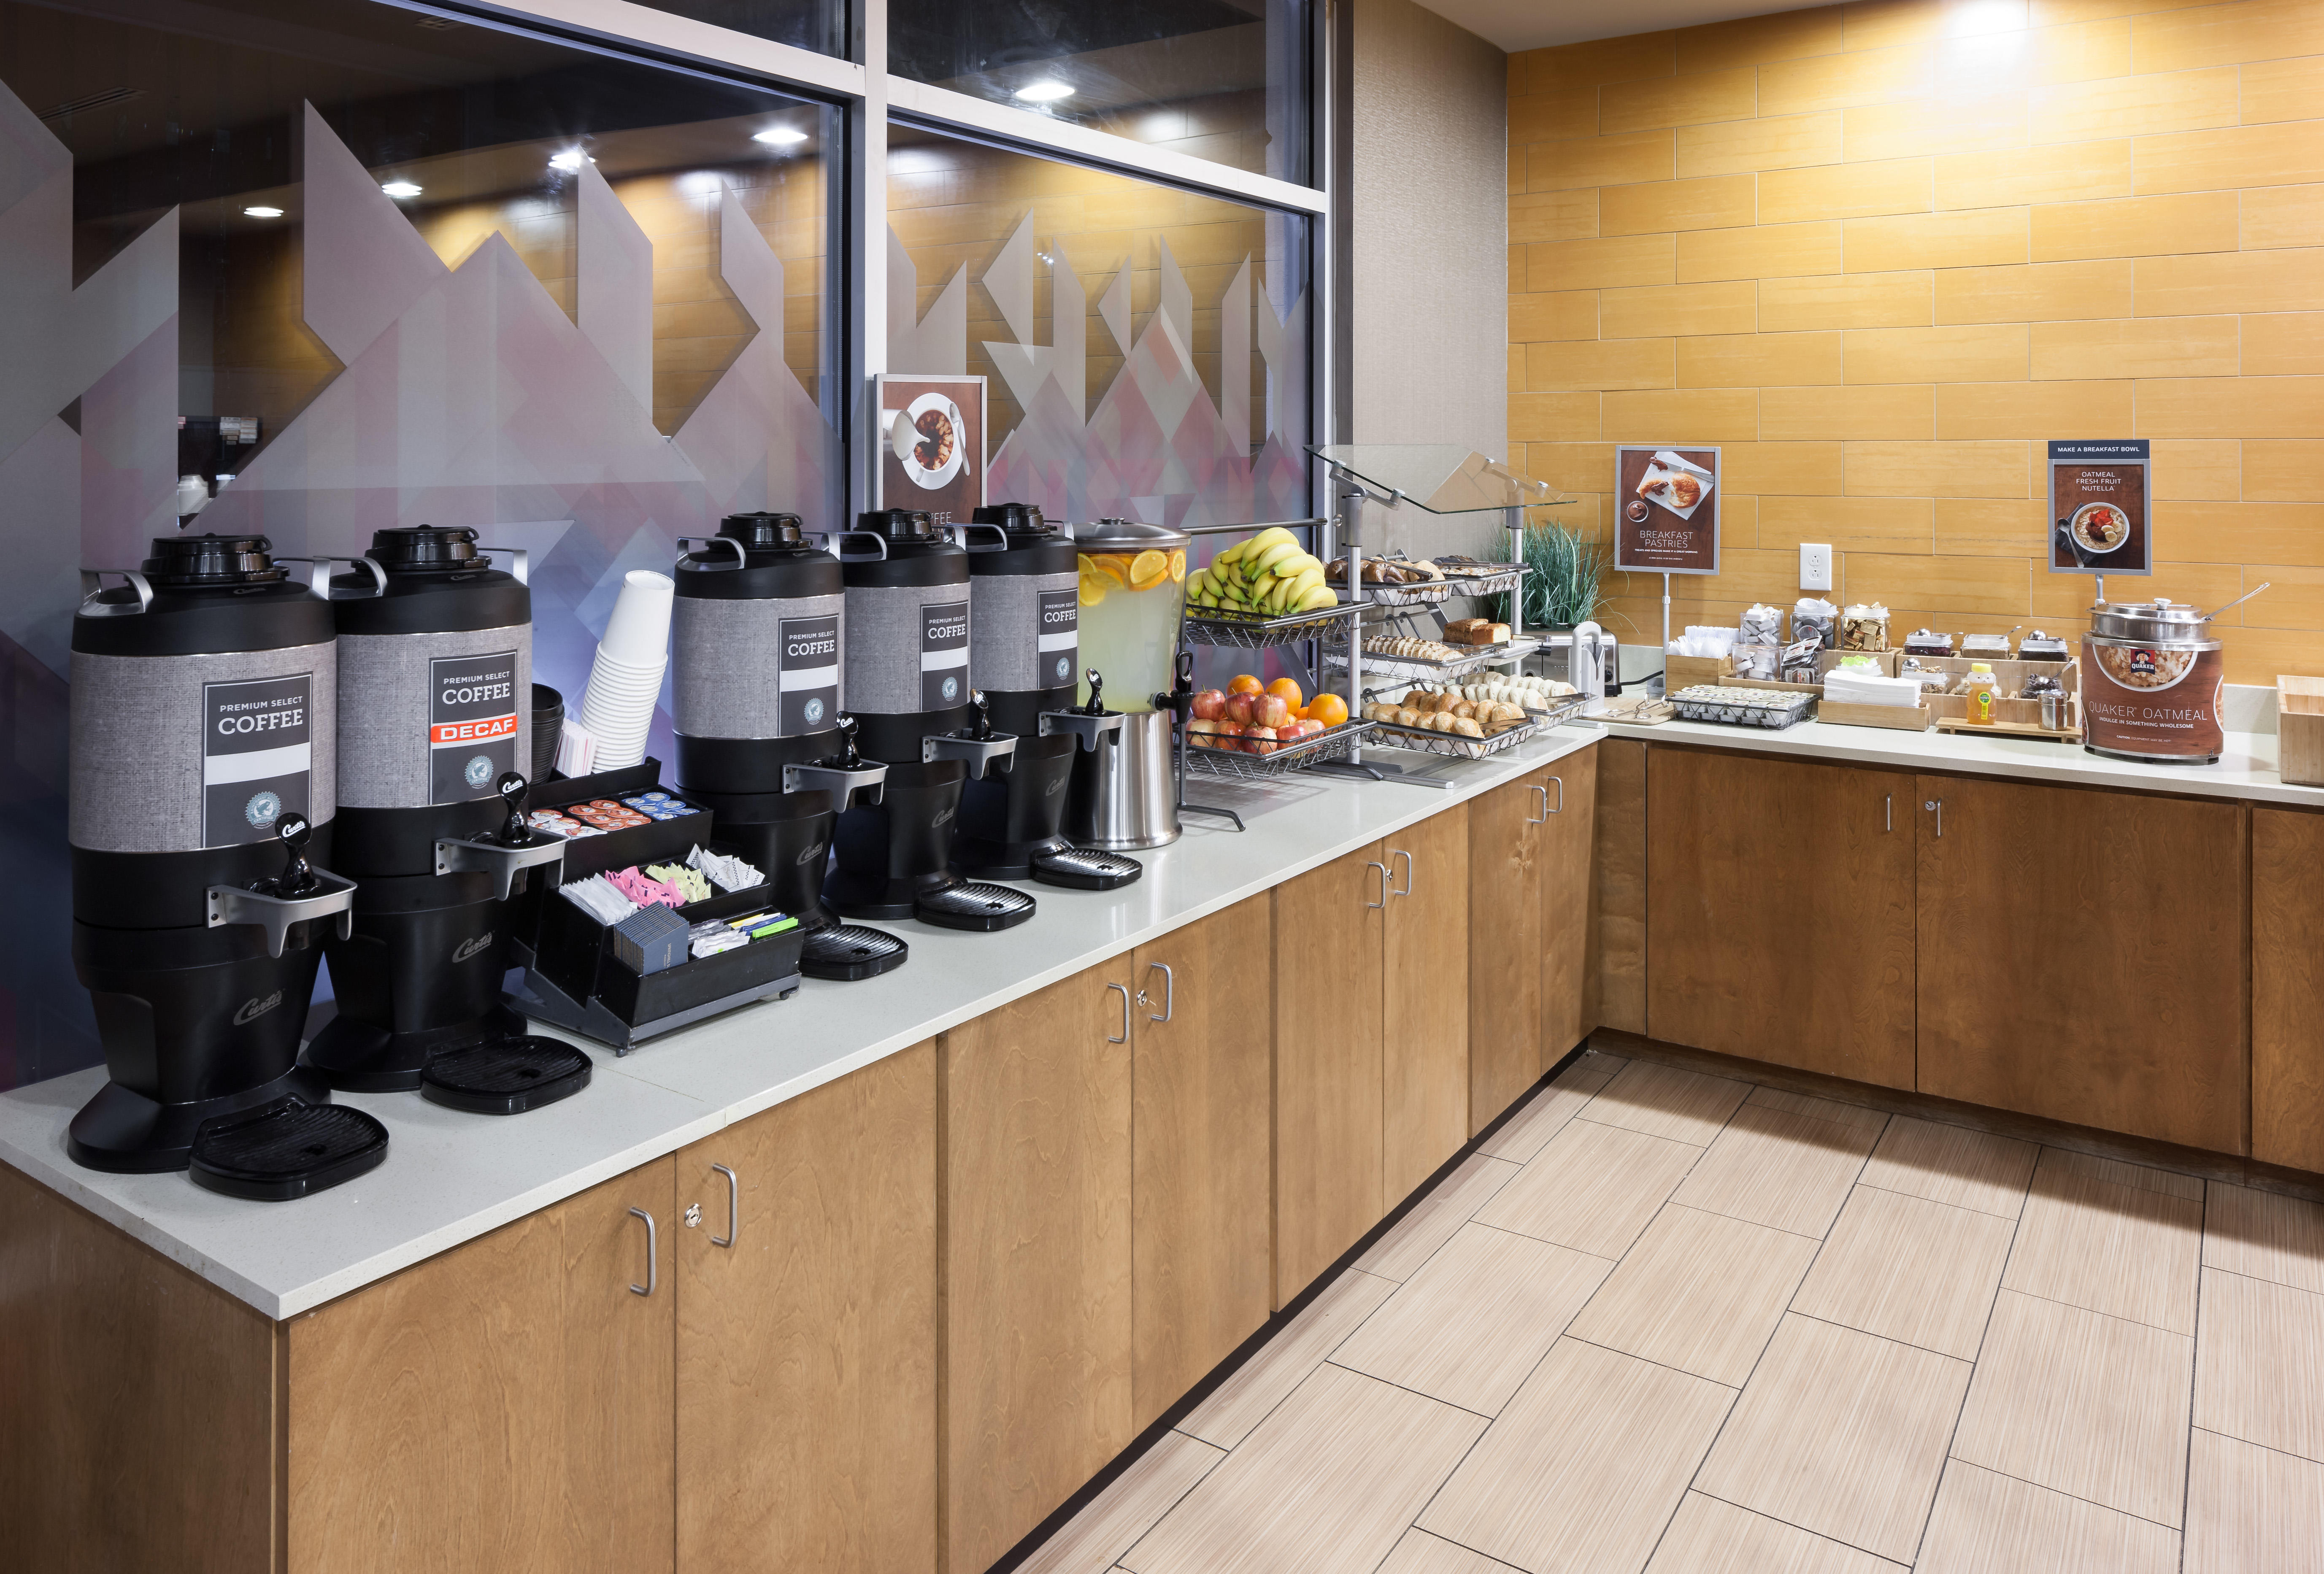 SpringHill Suites by Marriott Salt Lake City Airport image 4